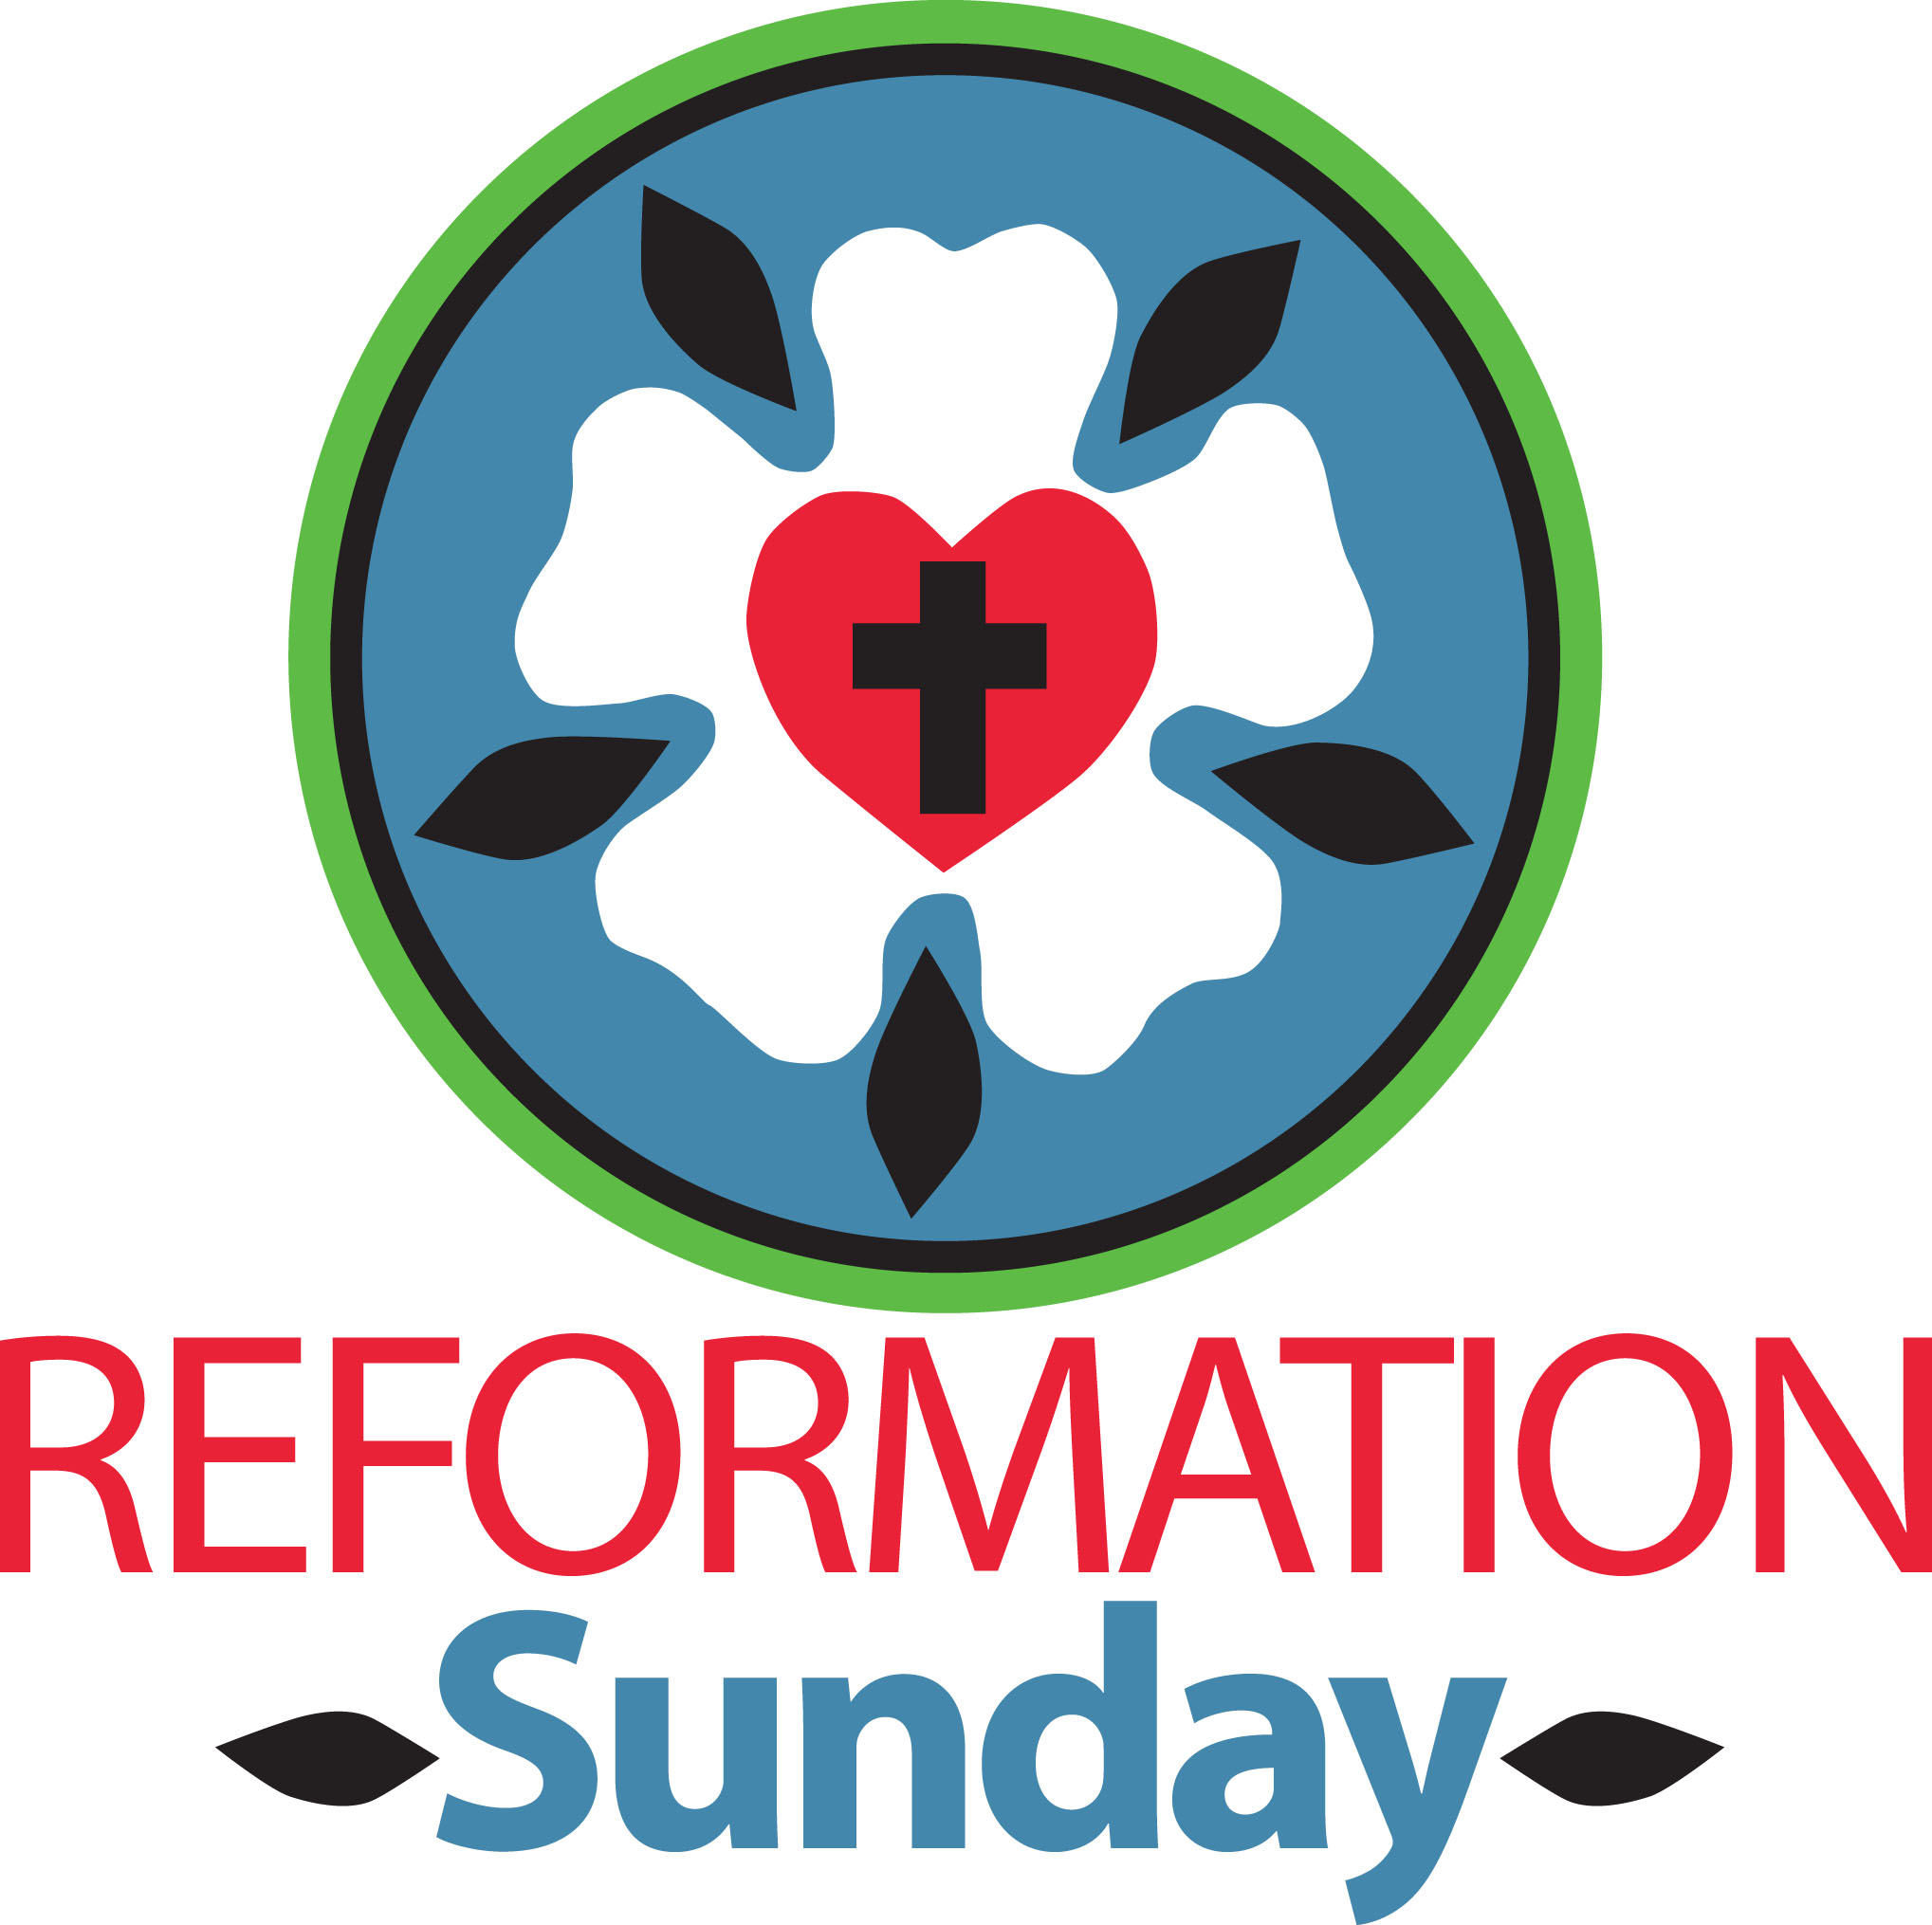 Reformation Sunday